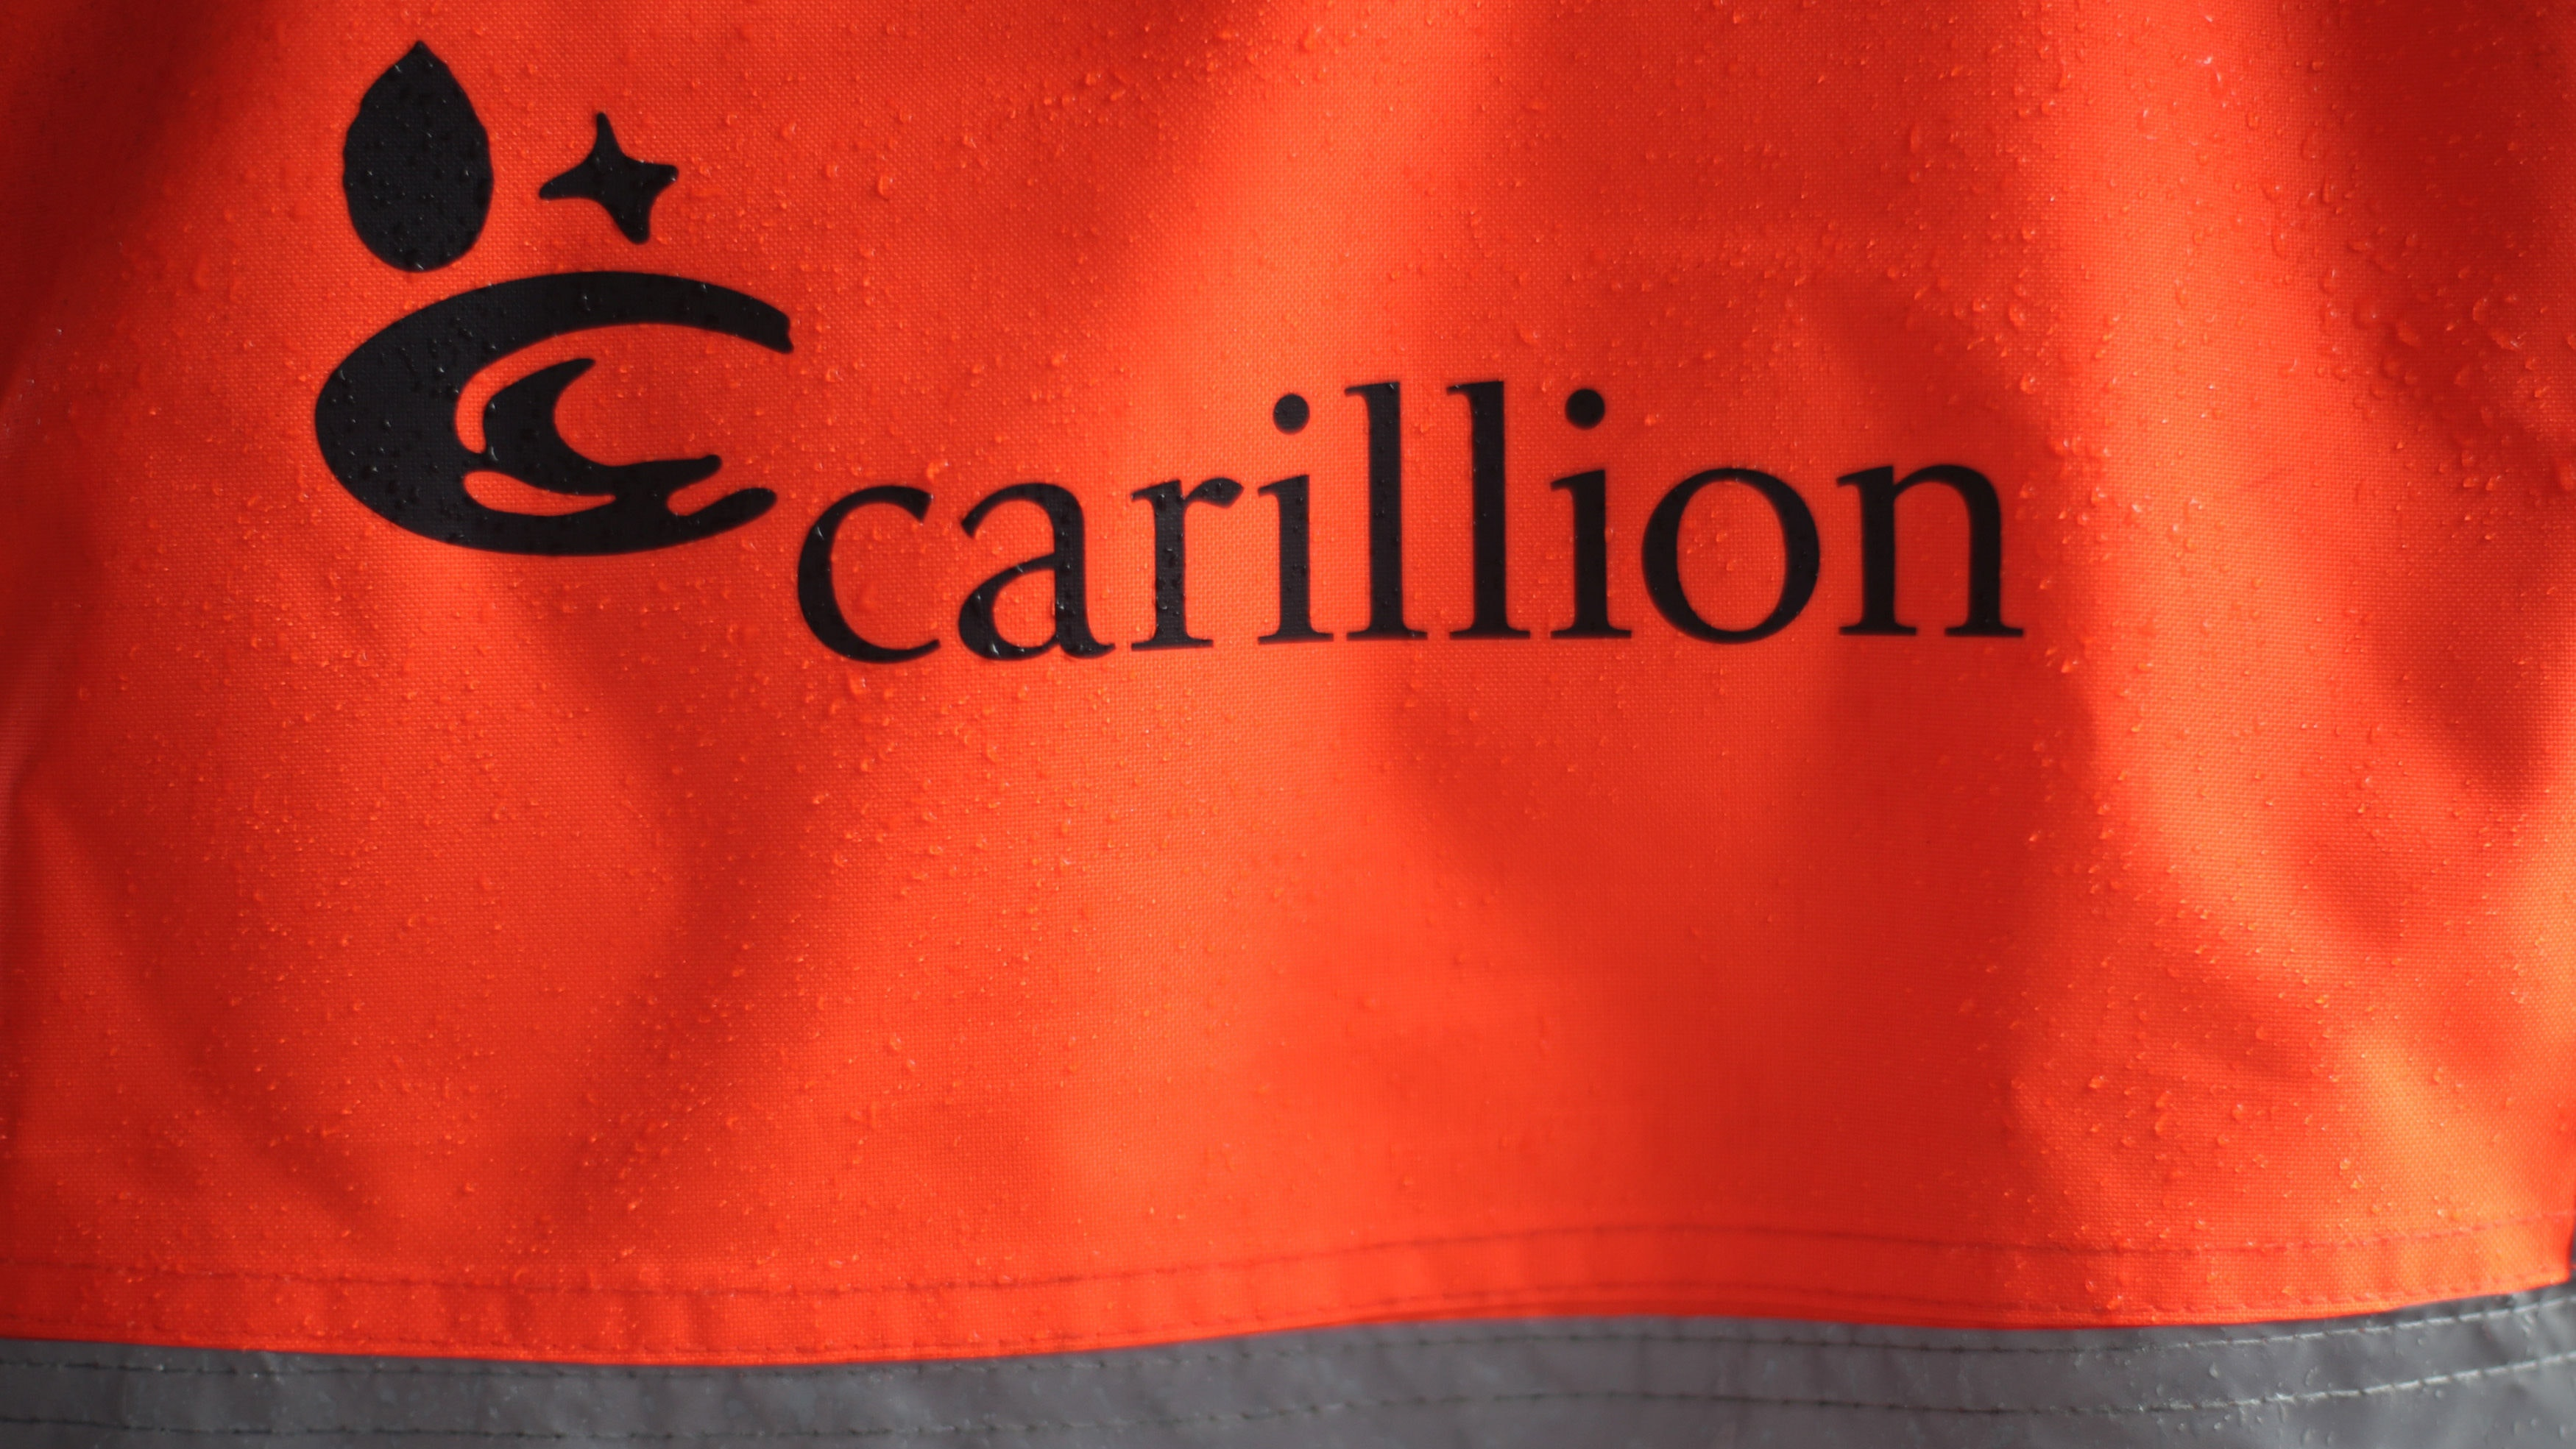 Carillion collapse: accounting watchdog investigating KPMG